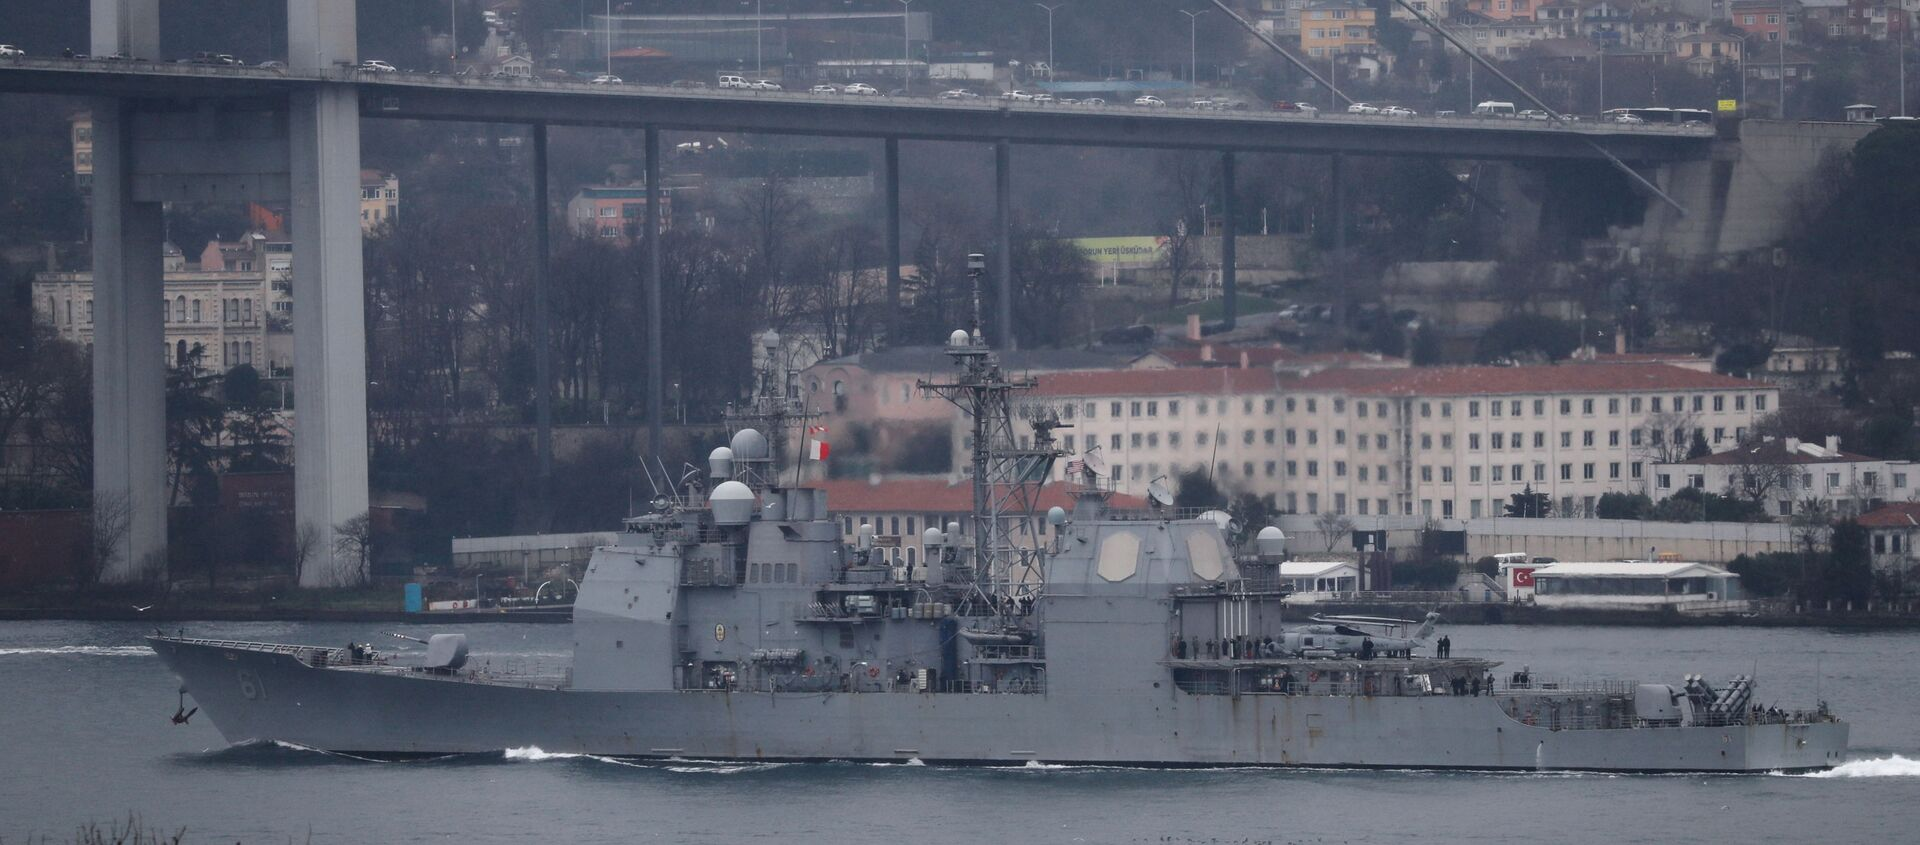 U.S. Navy guided-missile cruiser USS Monterey (CG-61) sails in the Bosphorus, on its way to the Black Sea, in Istanbul, Turkey March 19, 2021 - Sputnik Italia, 1920, 14.04.2021